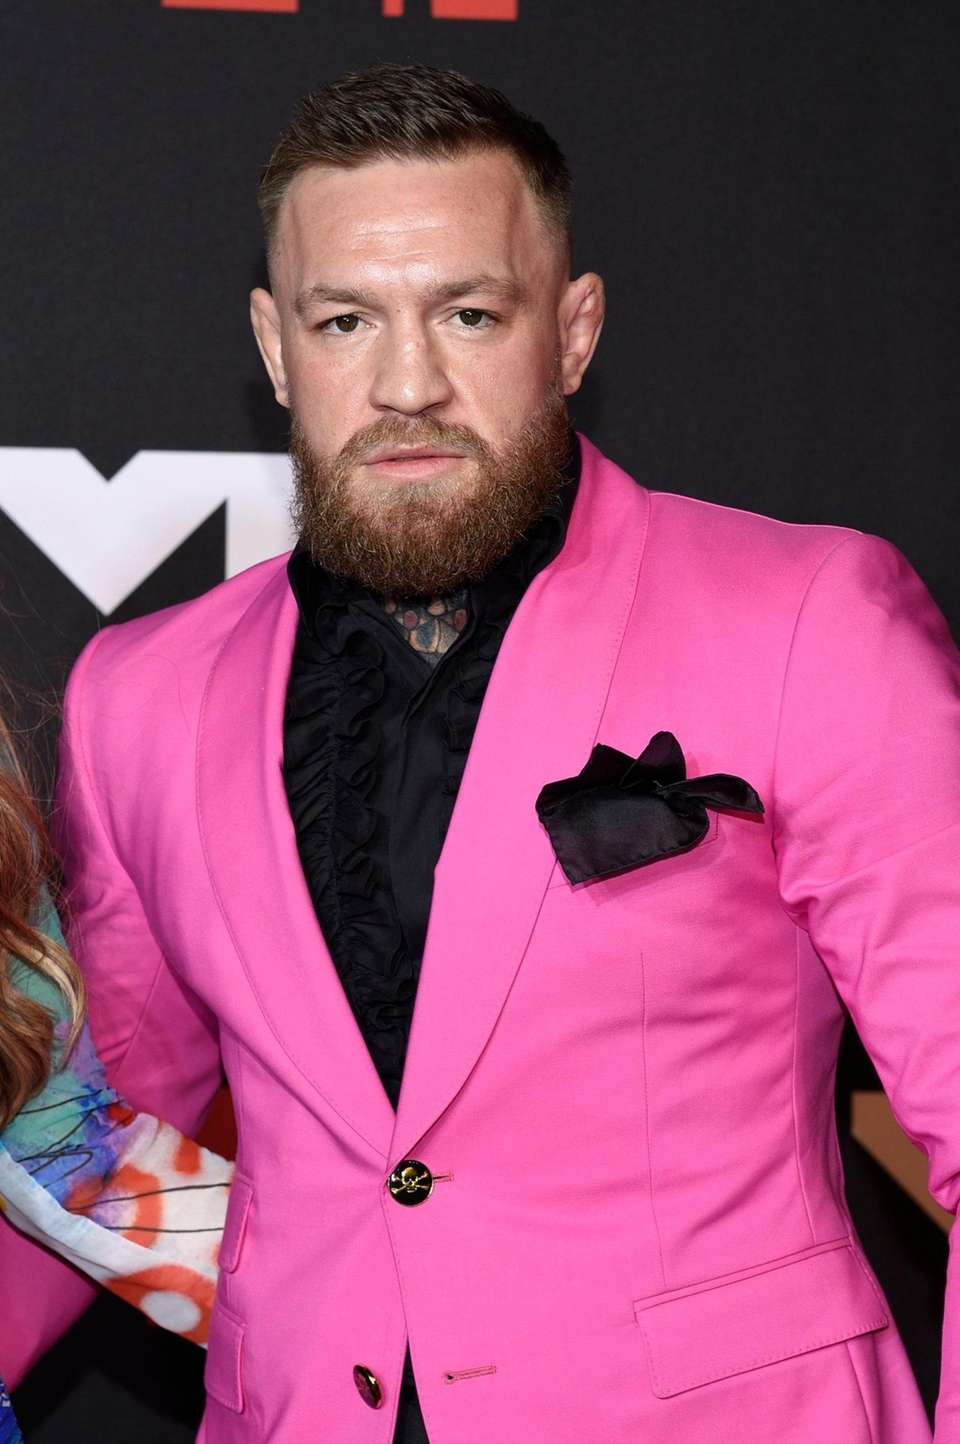 Conor McGregor arrives at the MTV Video Music